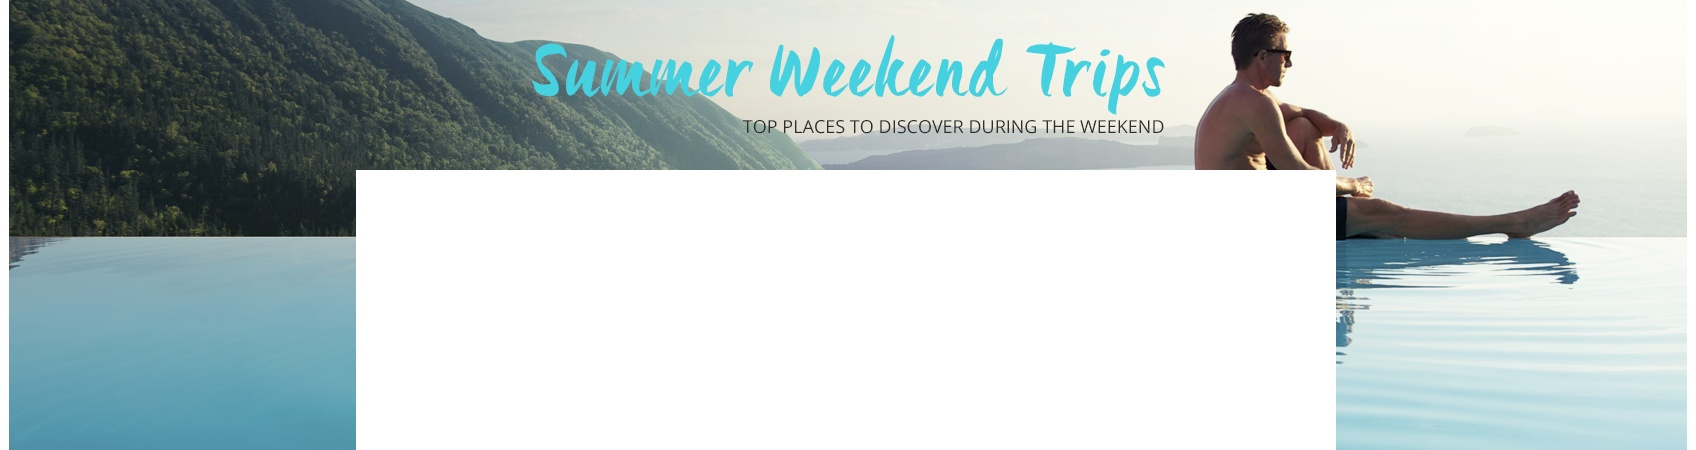 Summer Weekend Trips